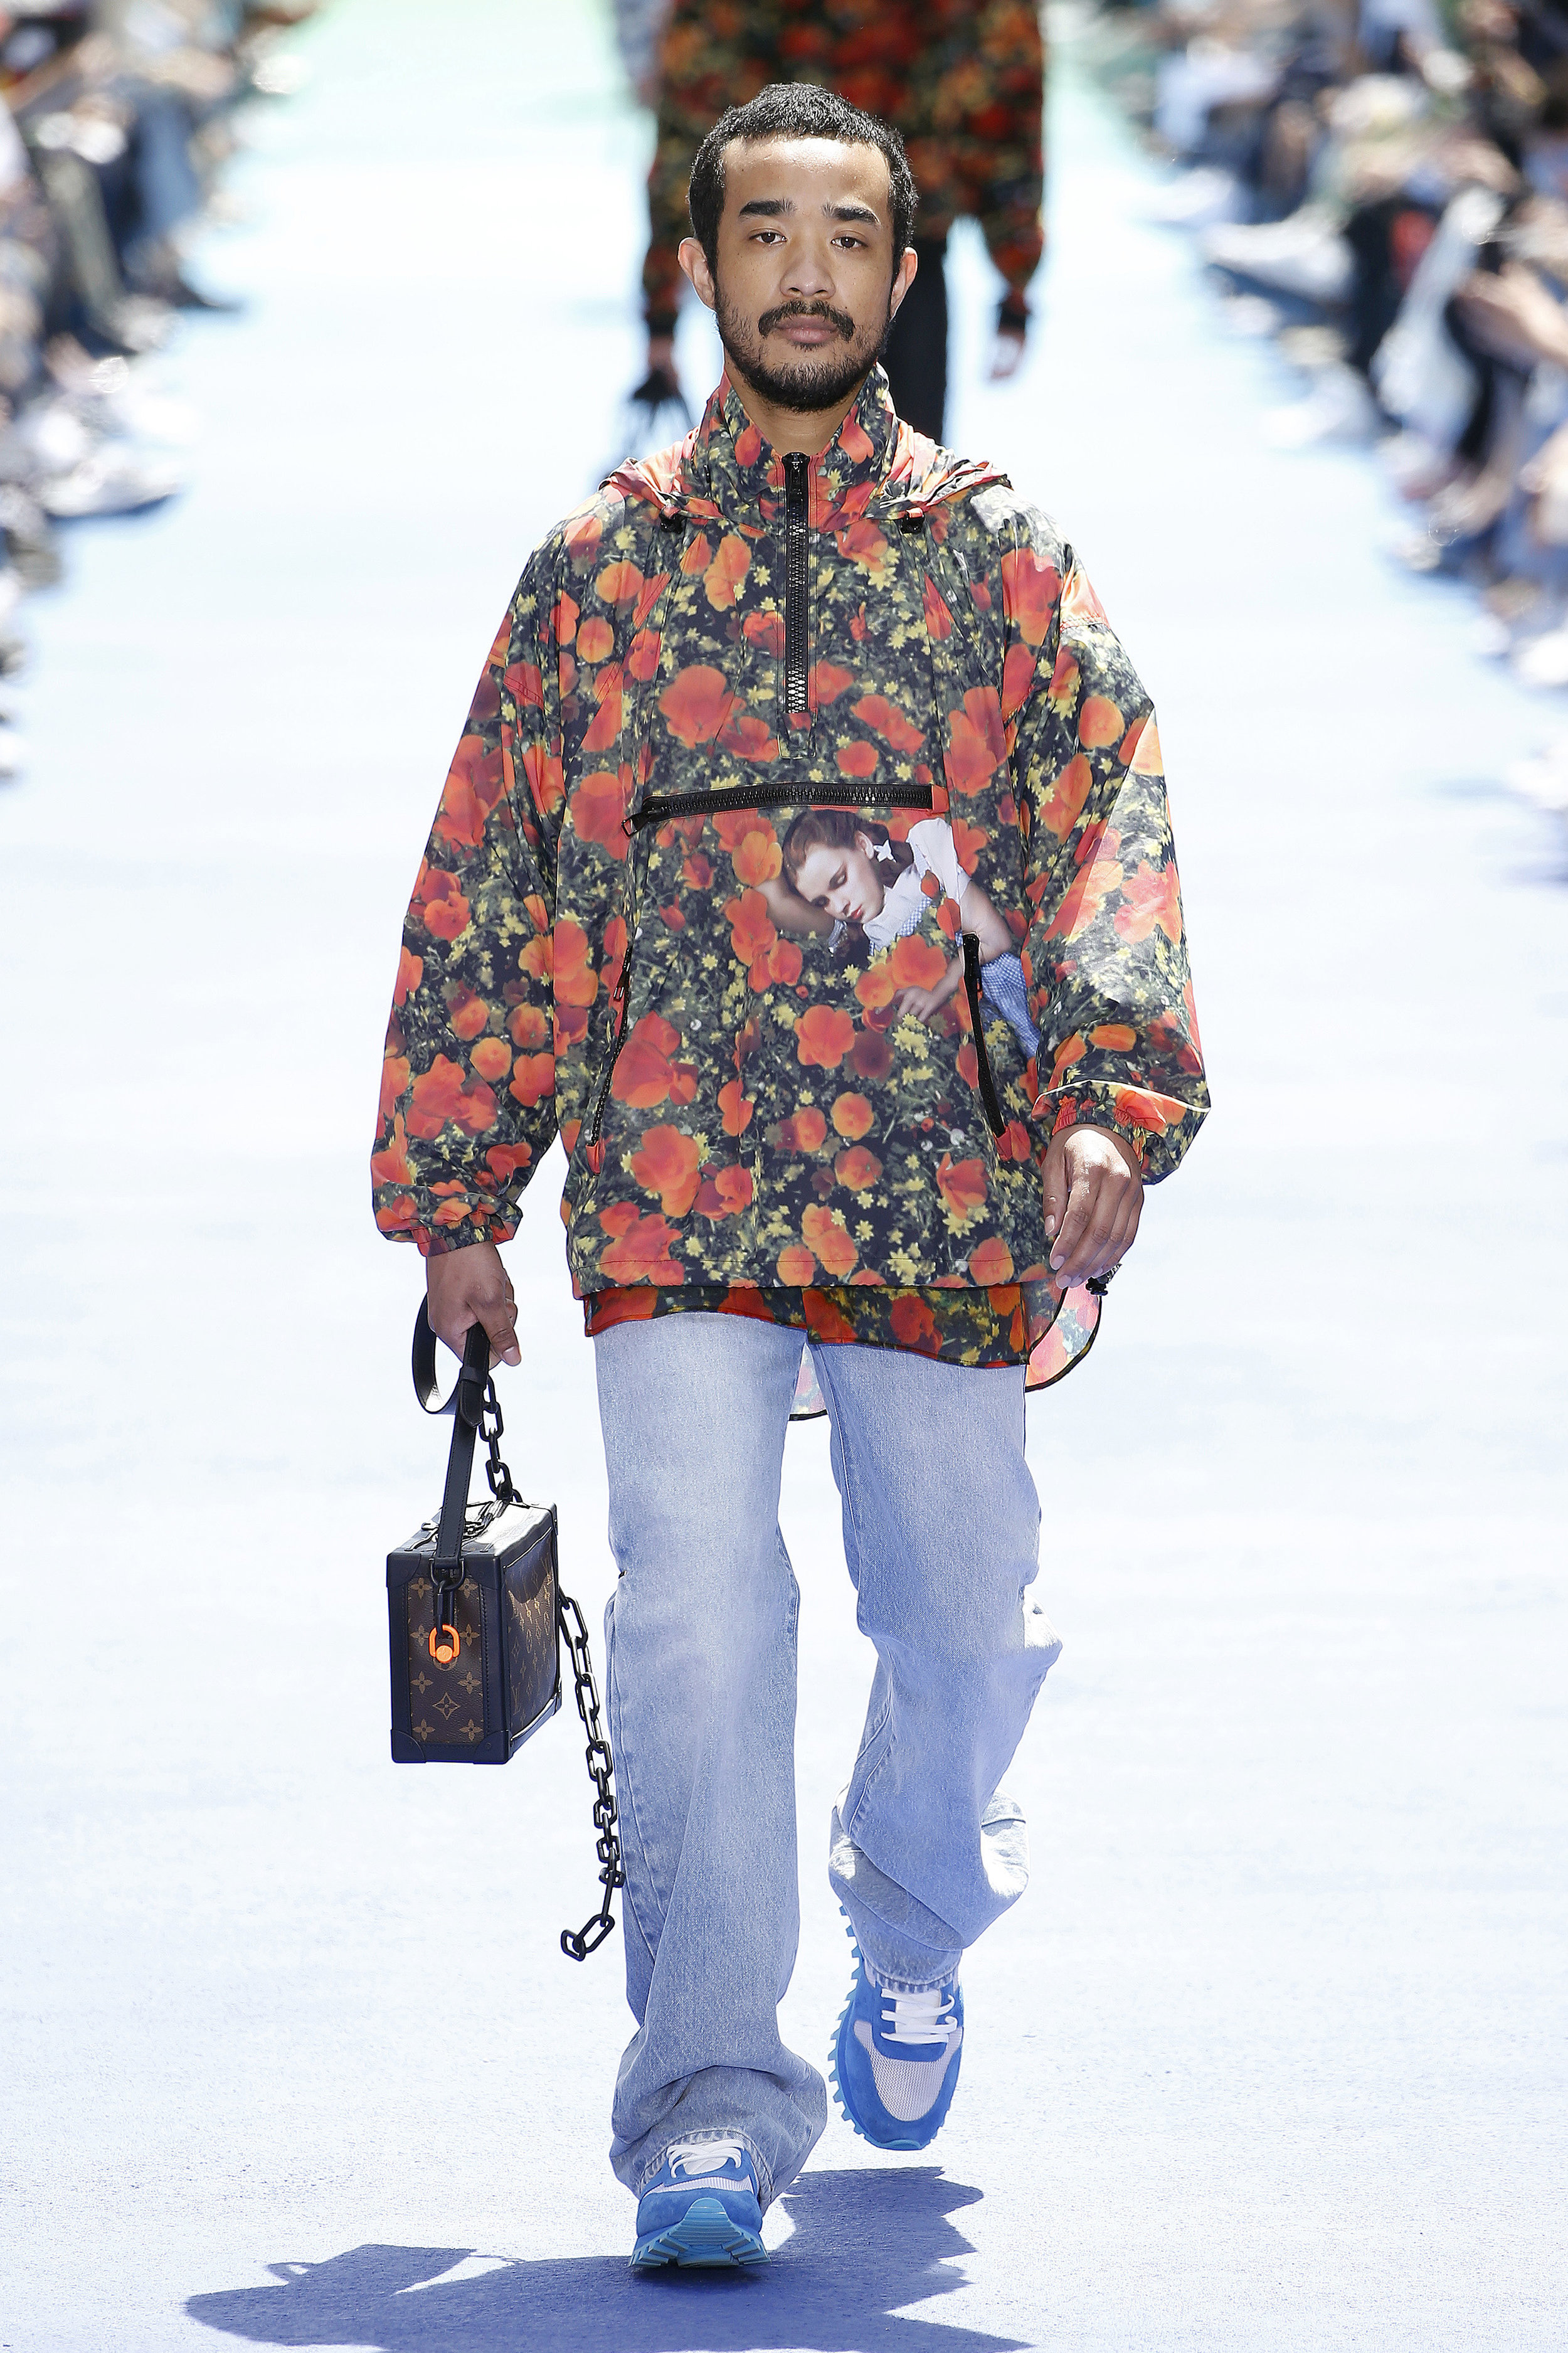 Abloh's Wizard of Oz collection for Louis Vuitton Menswear was a reflection of his own ascent in the fashion industry.